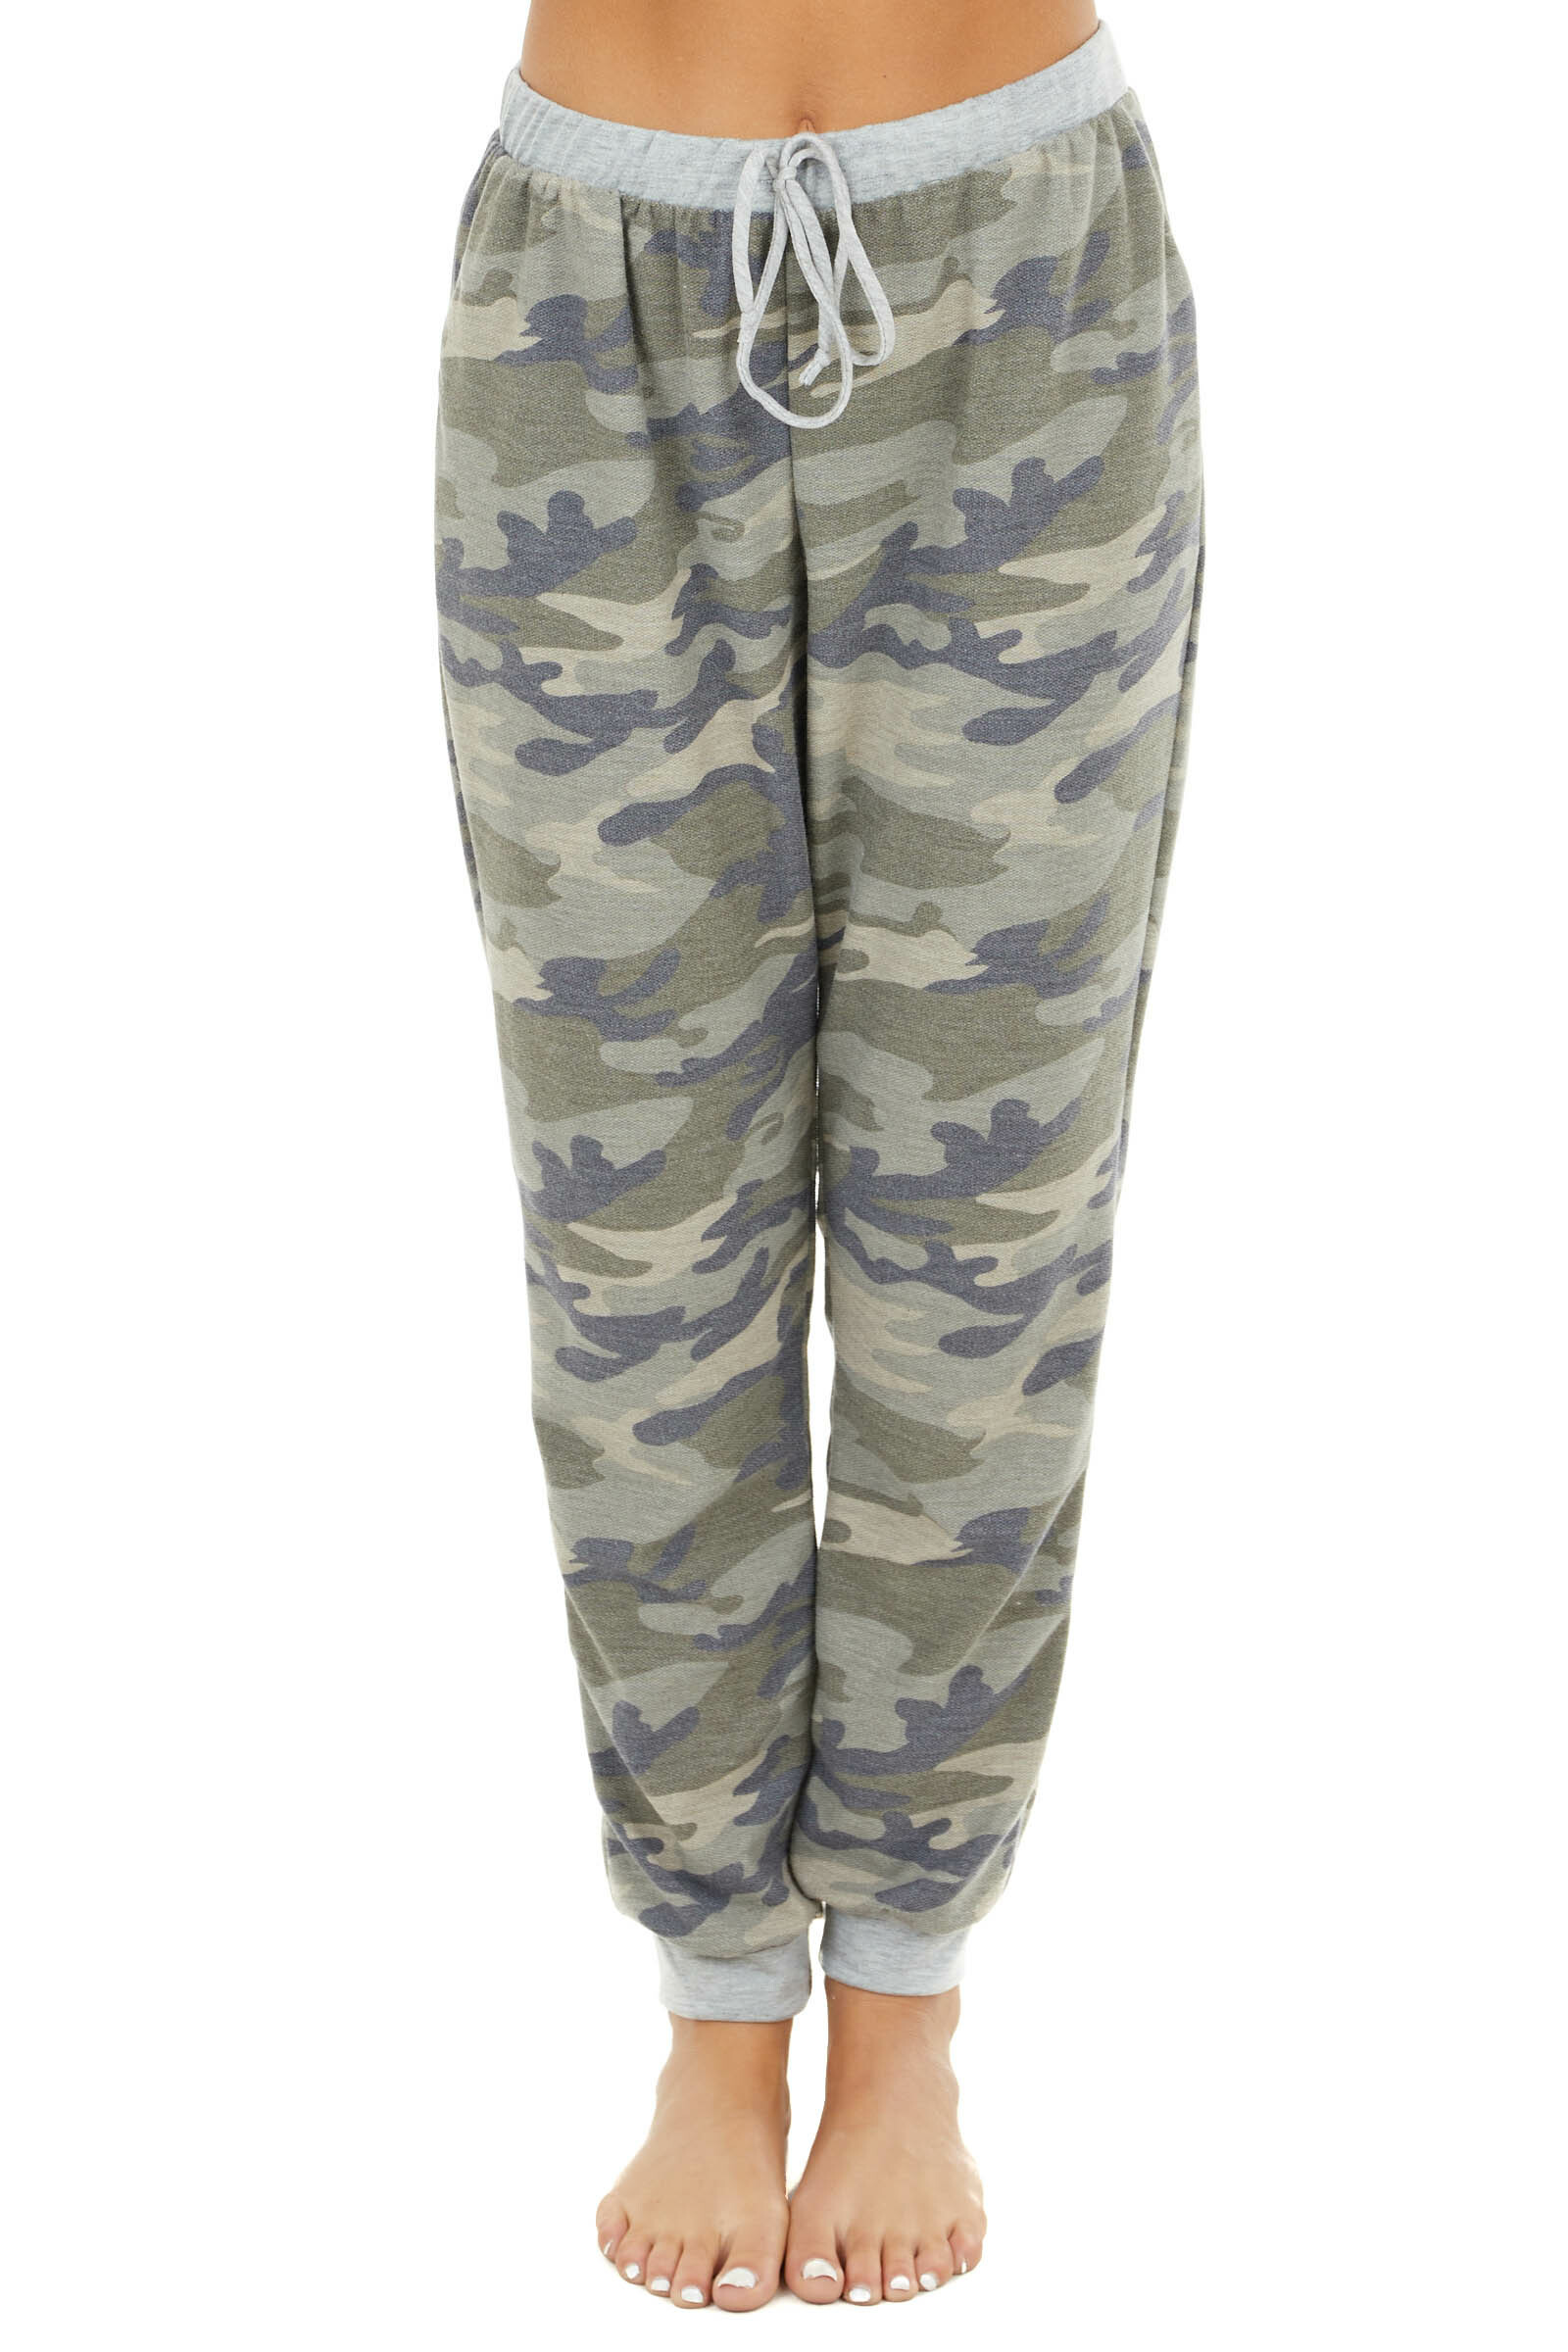 Dusty Sage Camo Print Joggers with Pockets and Tie Detail